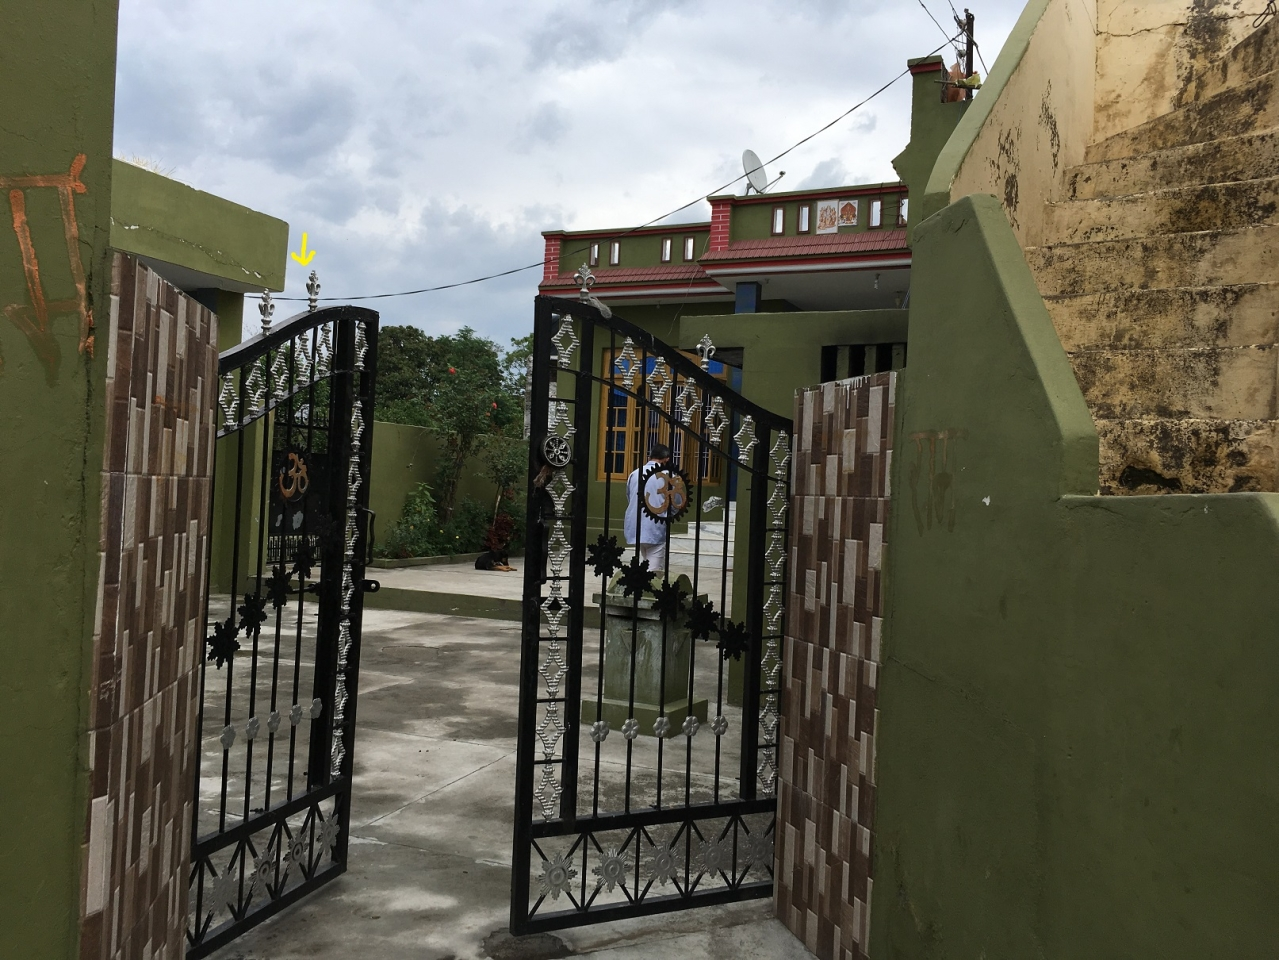 Entry to Sanji Ram's house. The yellow mark points to another gate that leads to Devasthan. This courtyard serves as a shortcut to the prayer hall for villagers.